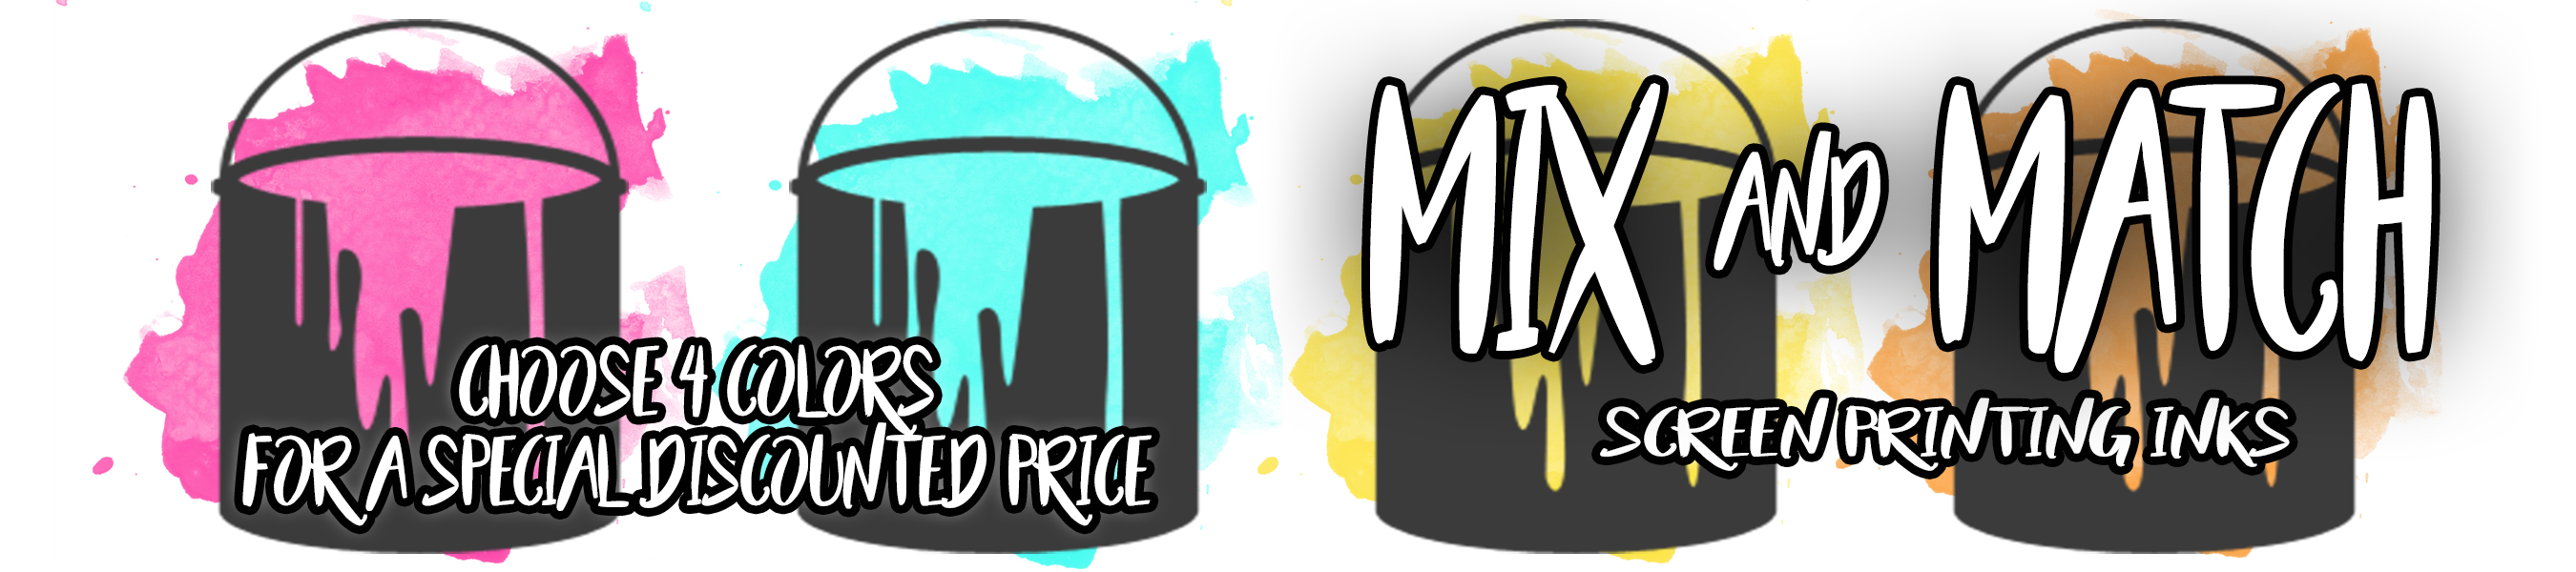 Mix and Match Inks